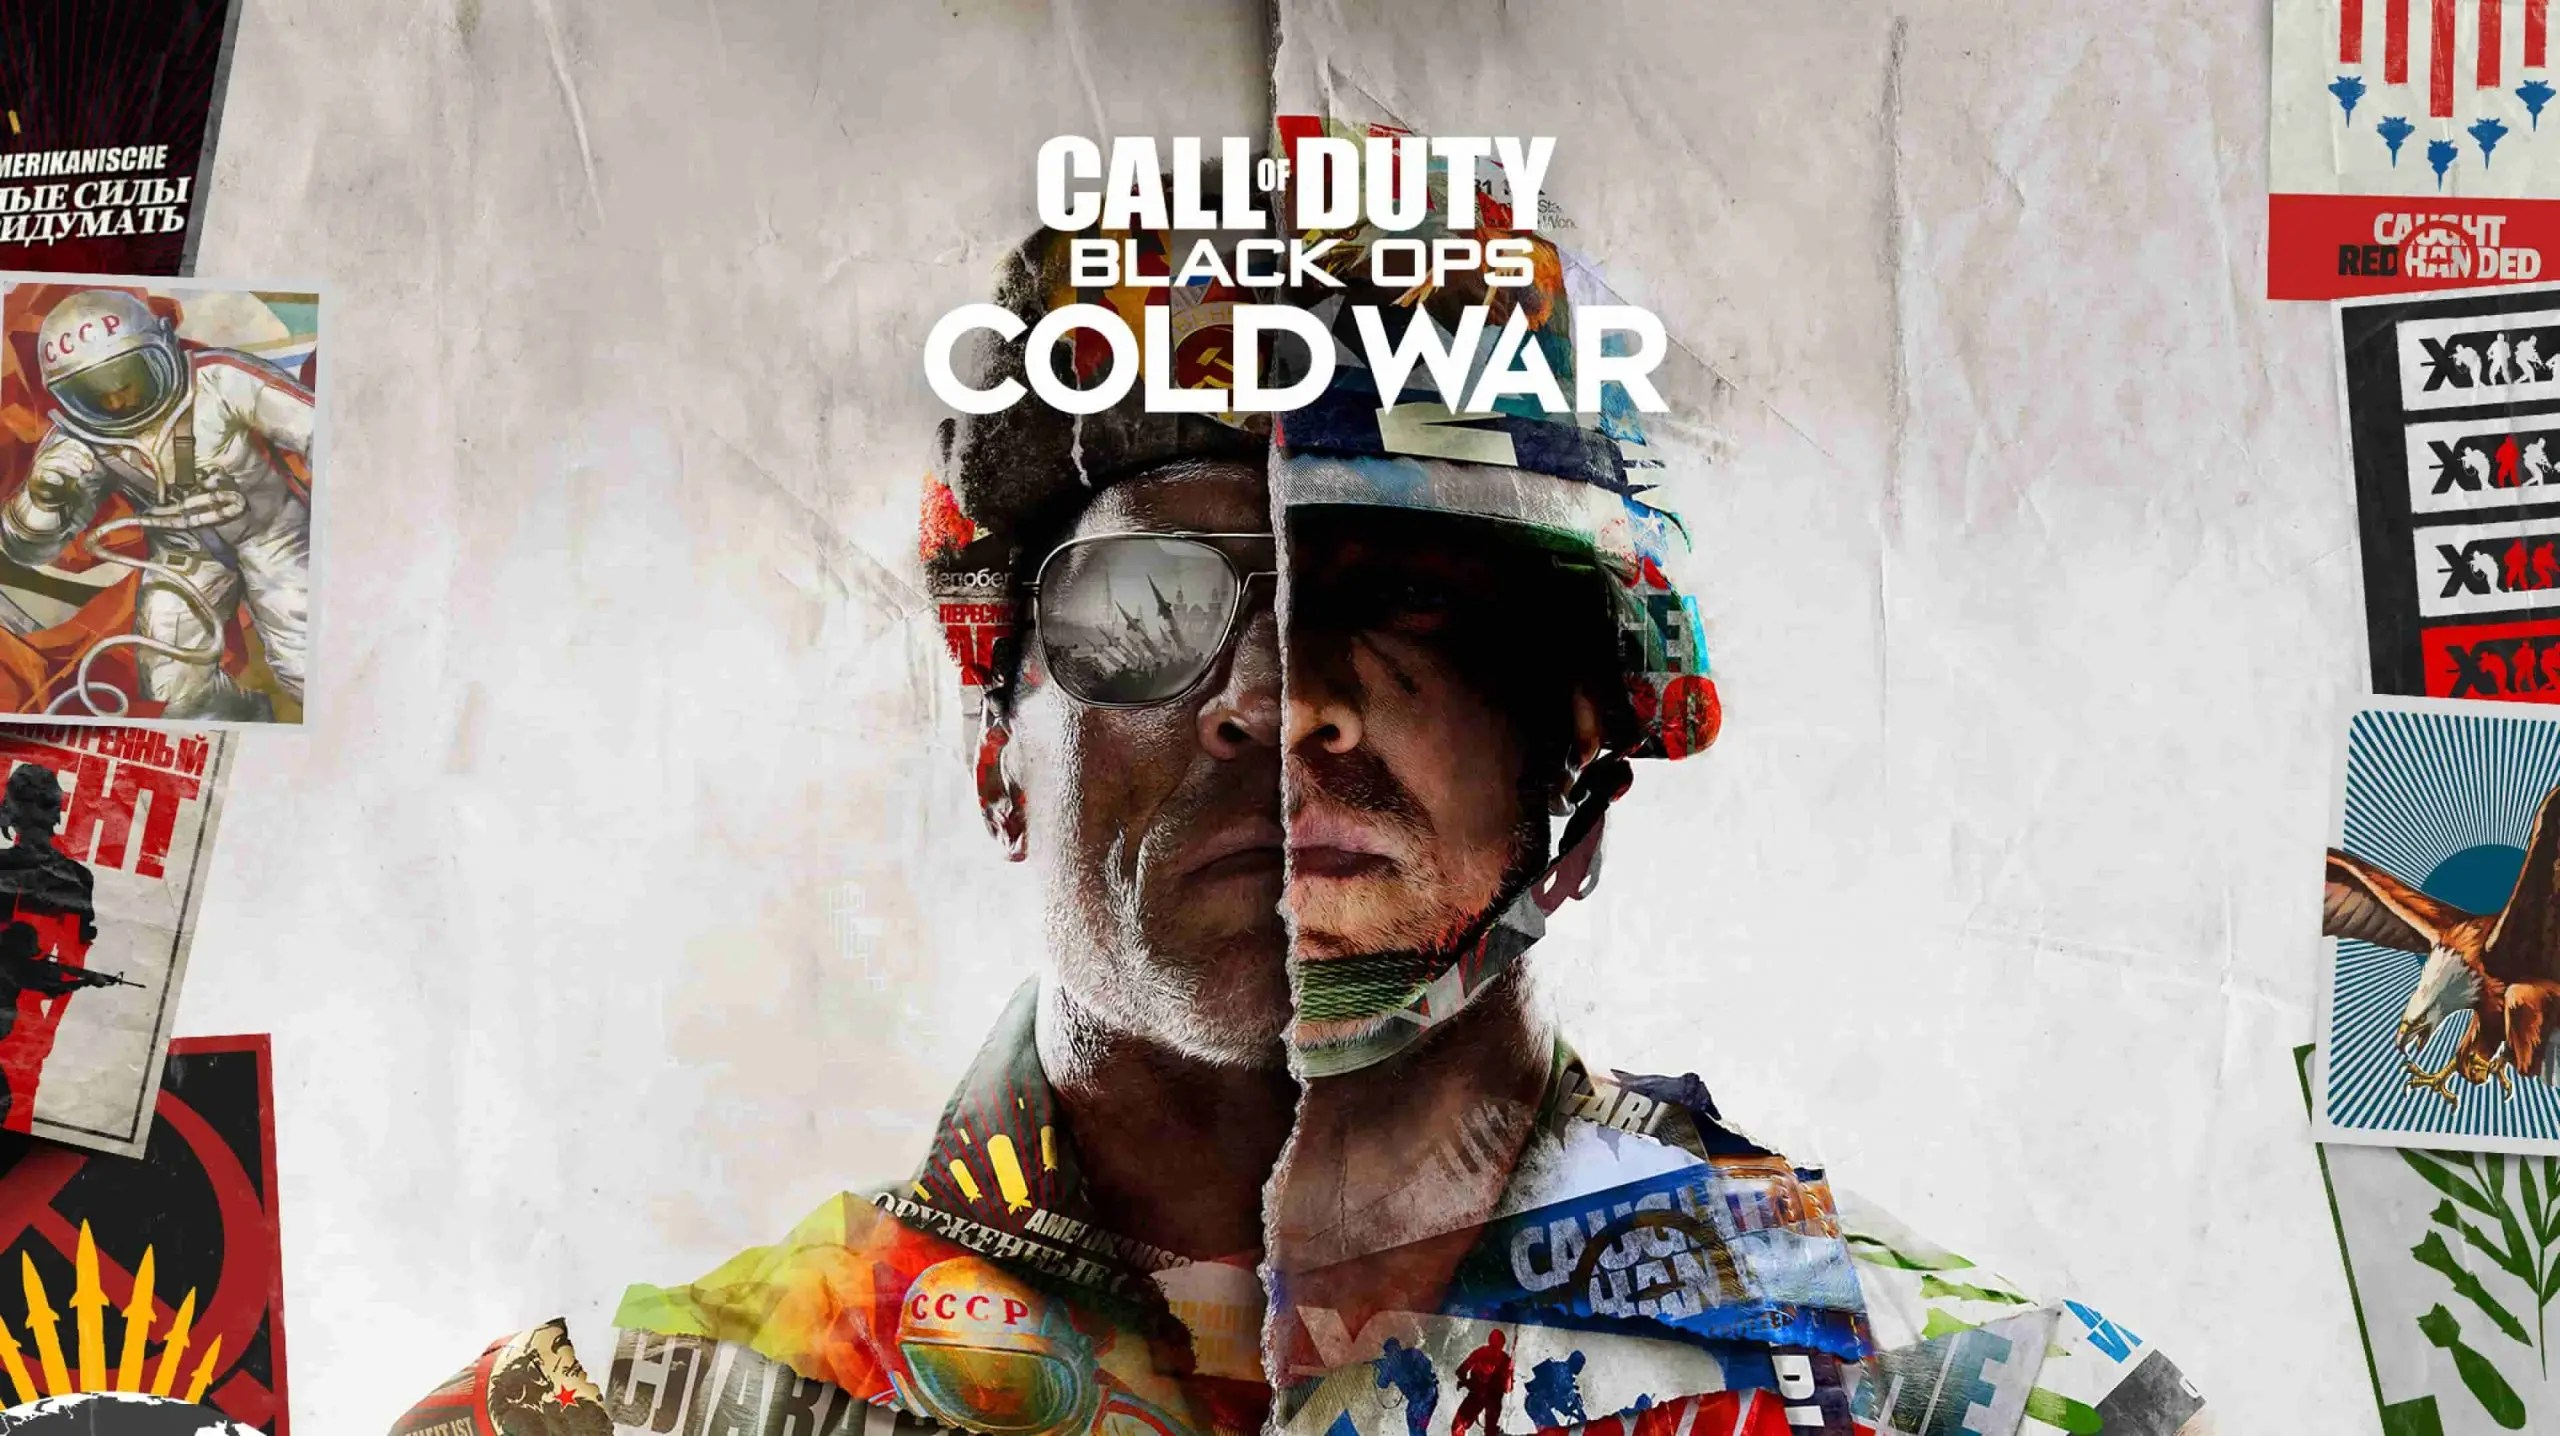 Call of Duty: Black Ops Cold War with release date and explanation